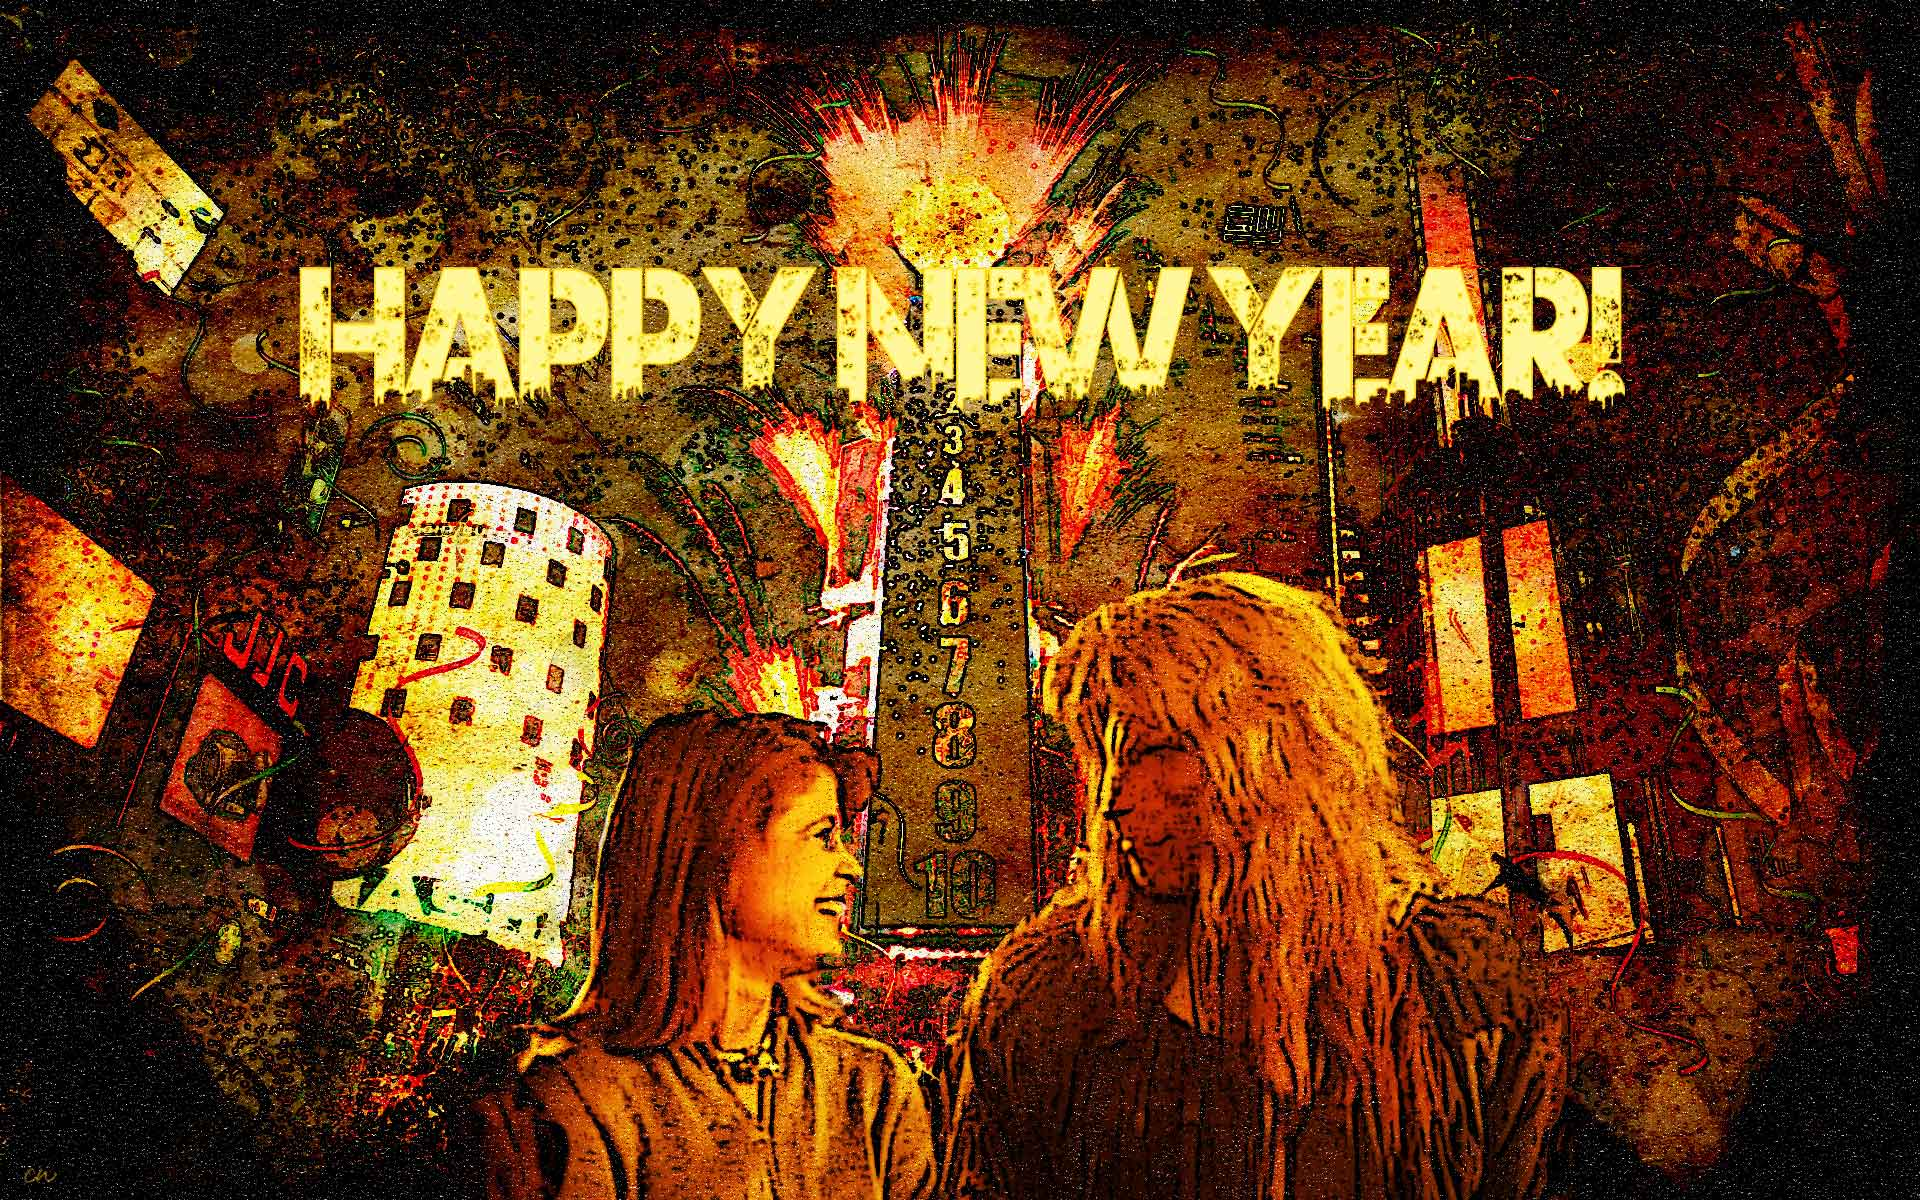 Happy New Year Graphic by Carole W